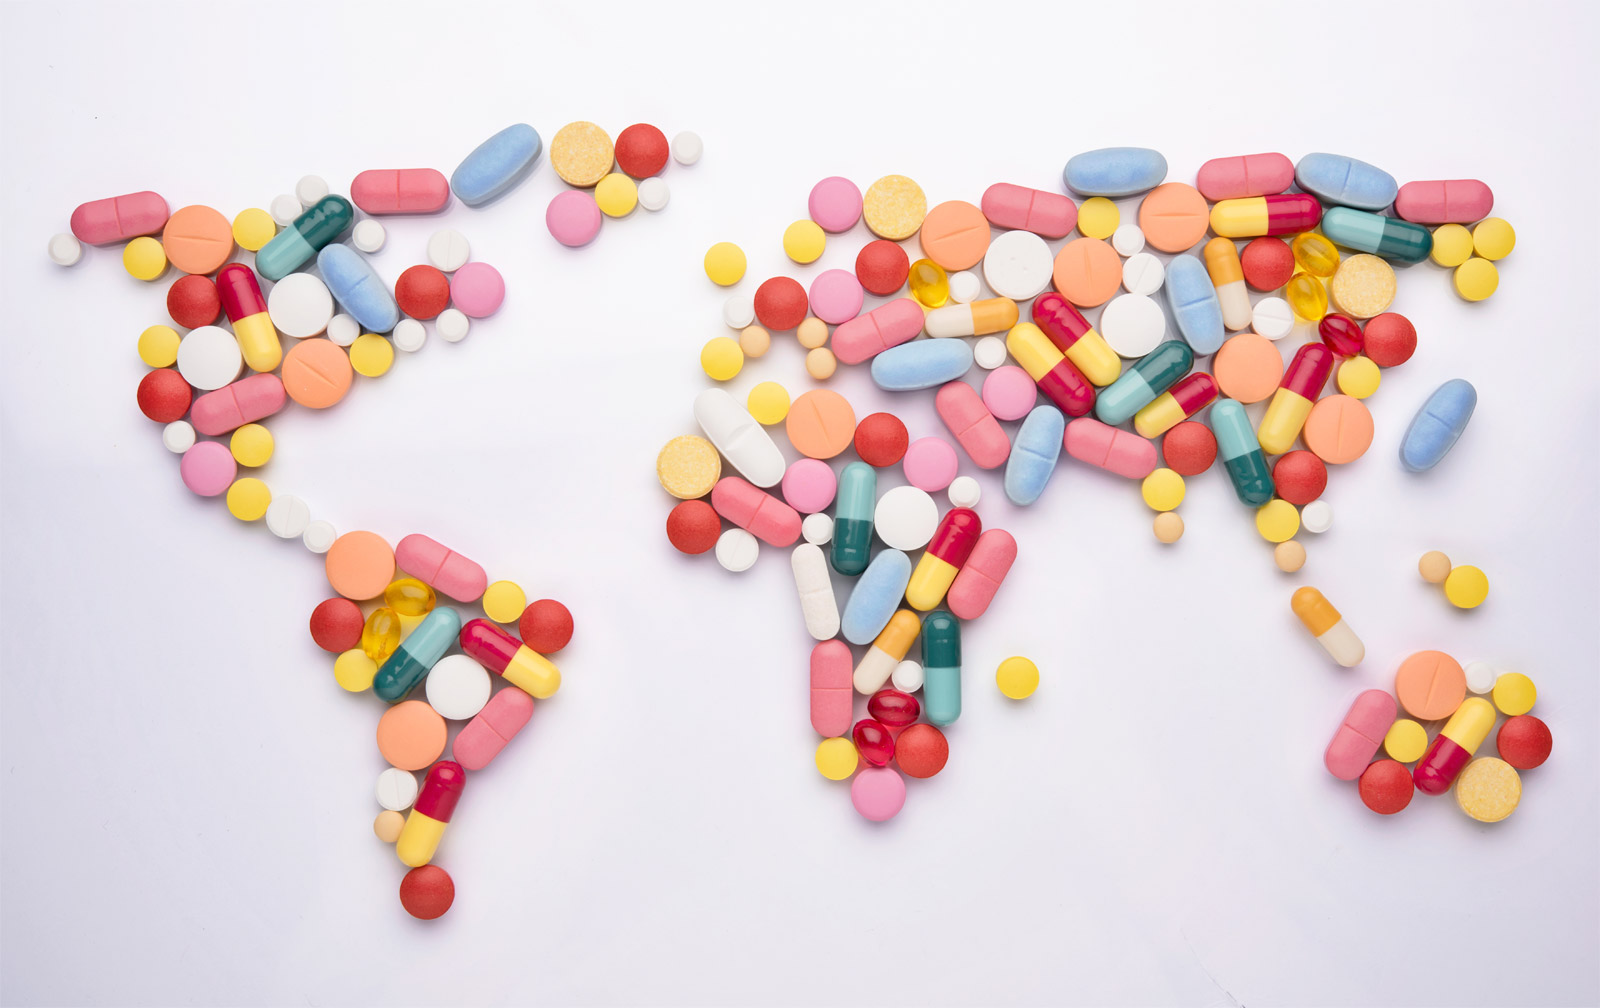 Antibacterial Drugs  Market Insights, Trends & Growth Outlook